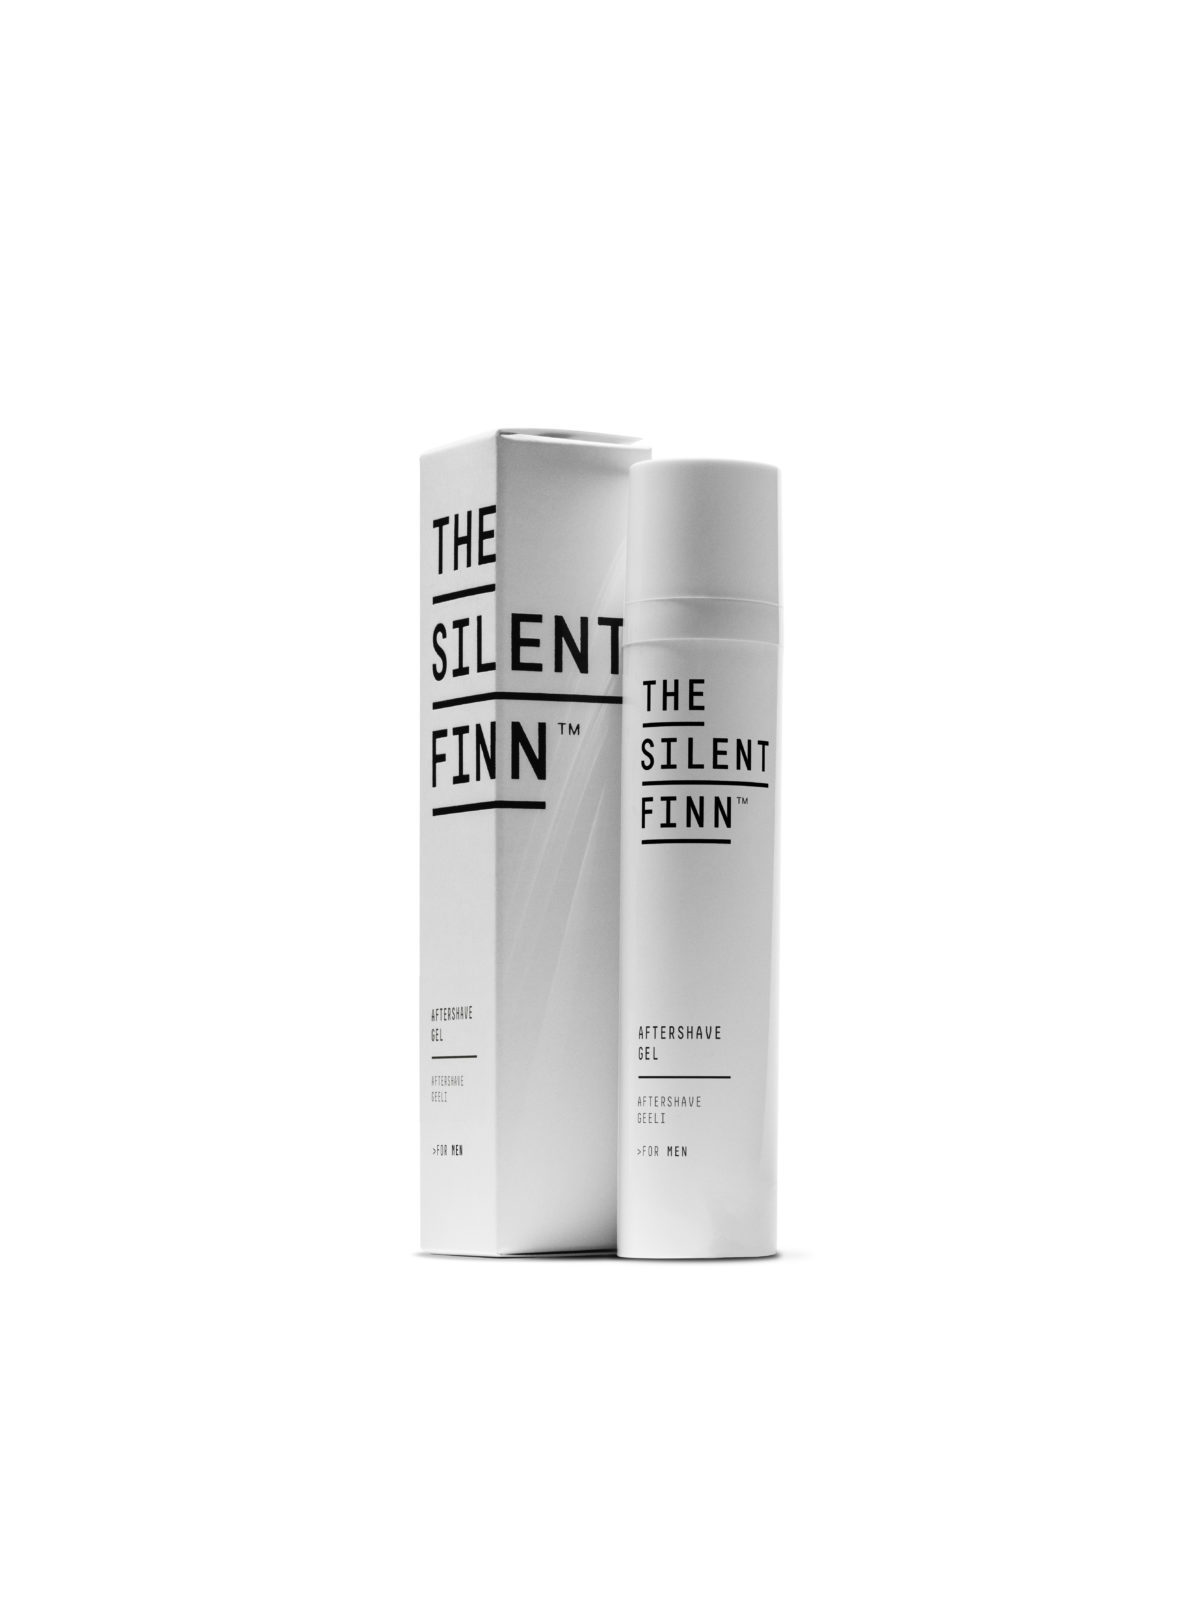 Tuotekuva: THE SILENT FINN -aftershave geeli (50 ml)